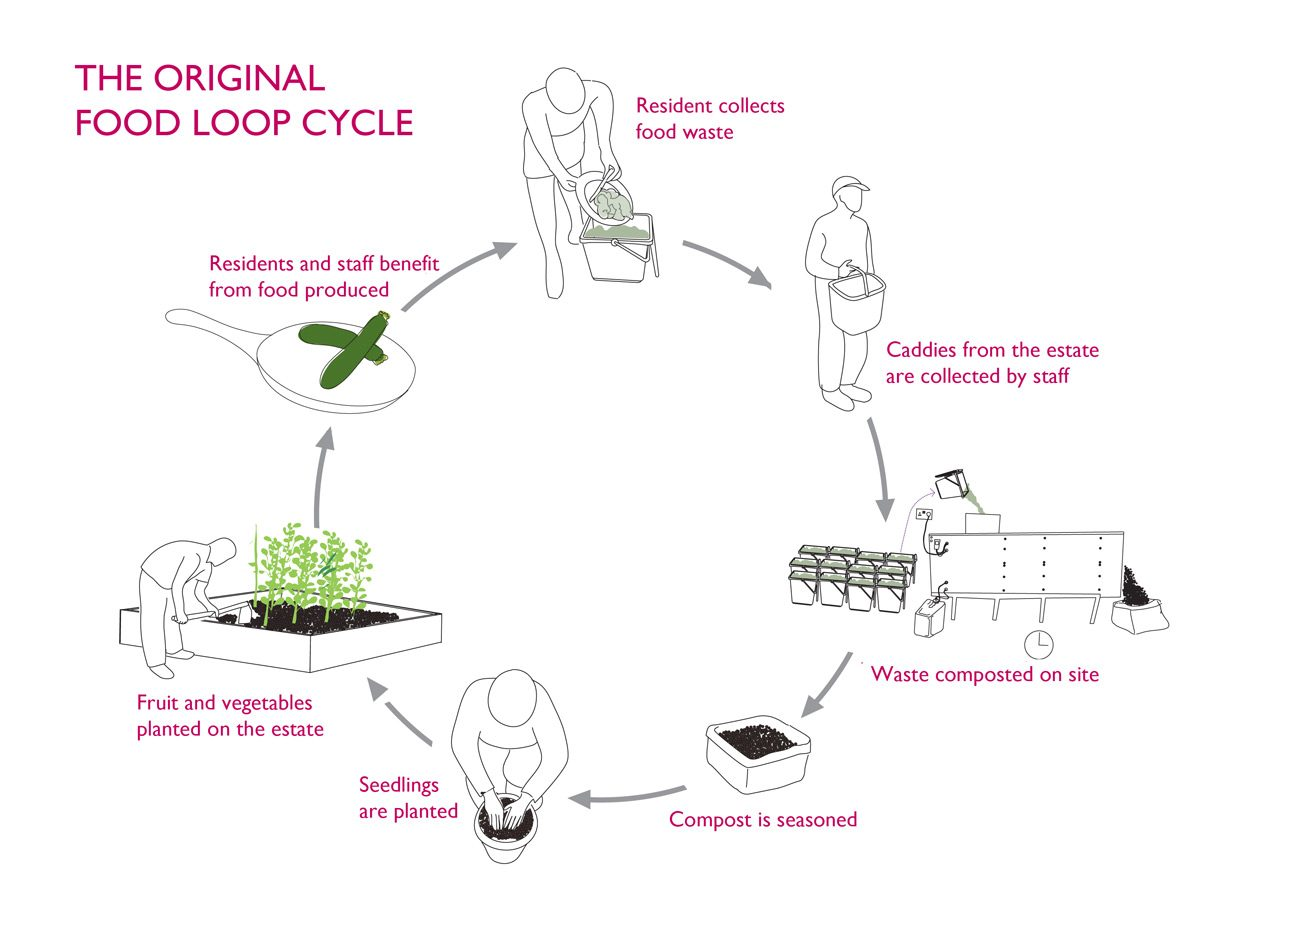 Clare Brass – Food Loop diagram, SEED Foundation www.foodloop.org.uk